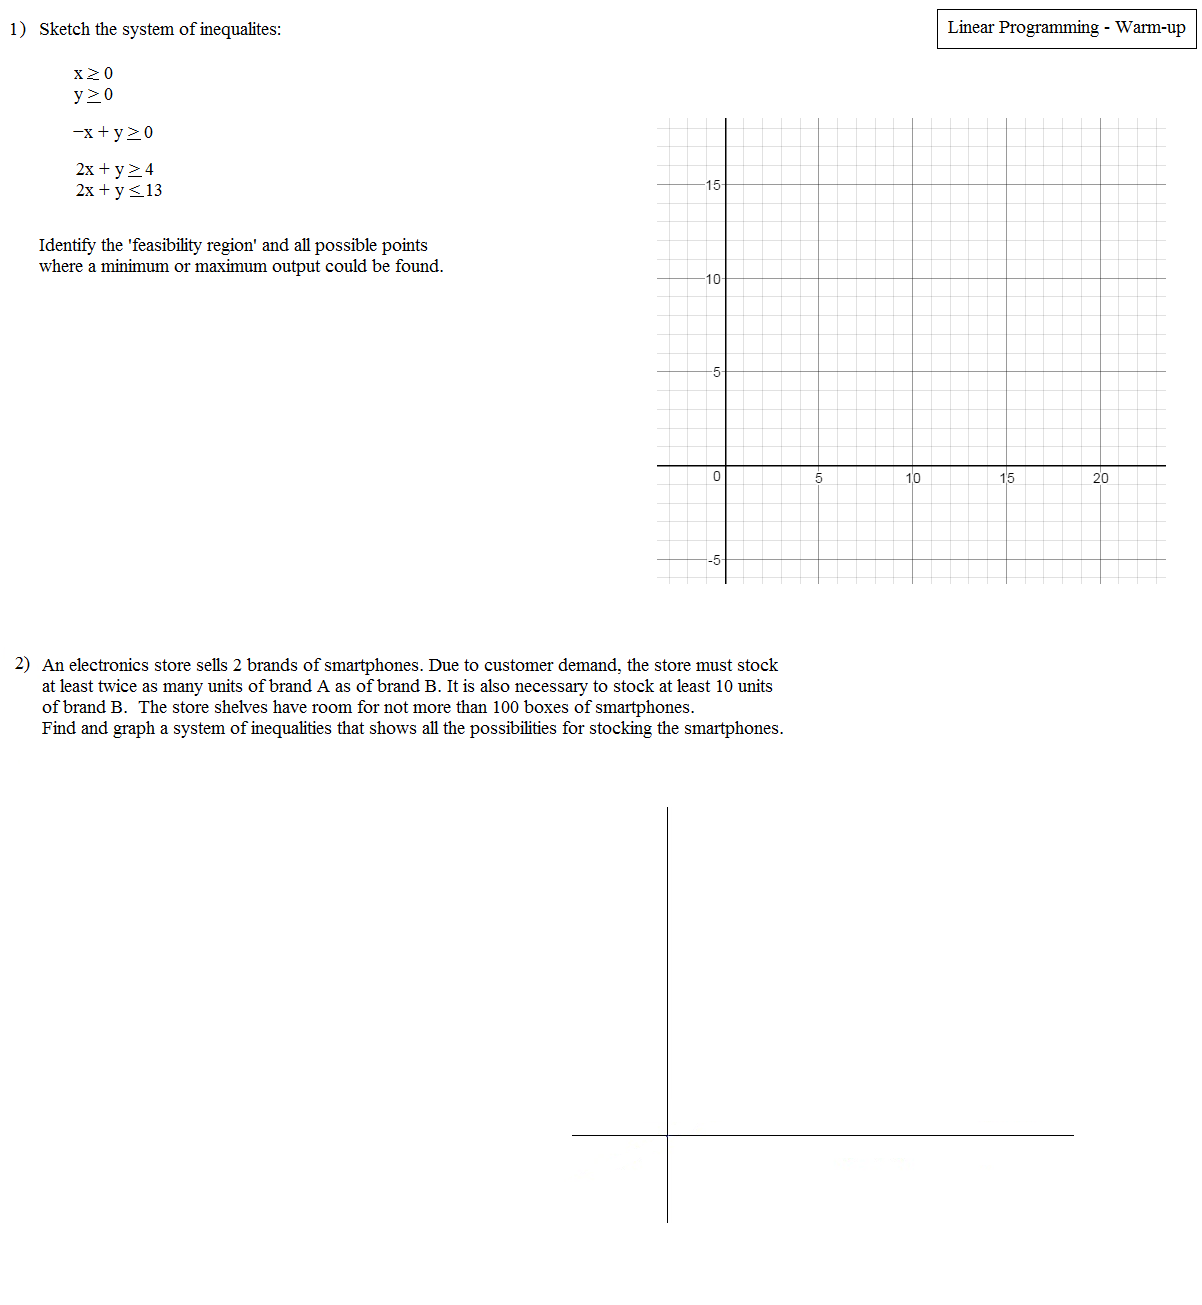 Worksheets Linear Programming Worksheet math plane linear programming optimization worksheet warm up 1